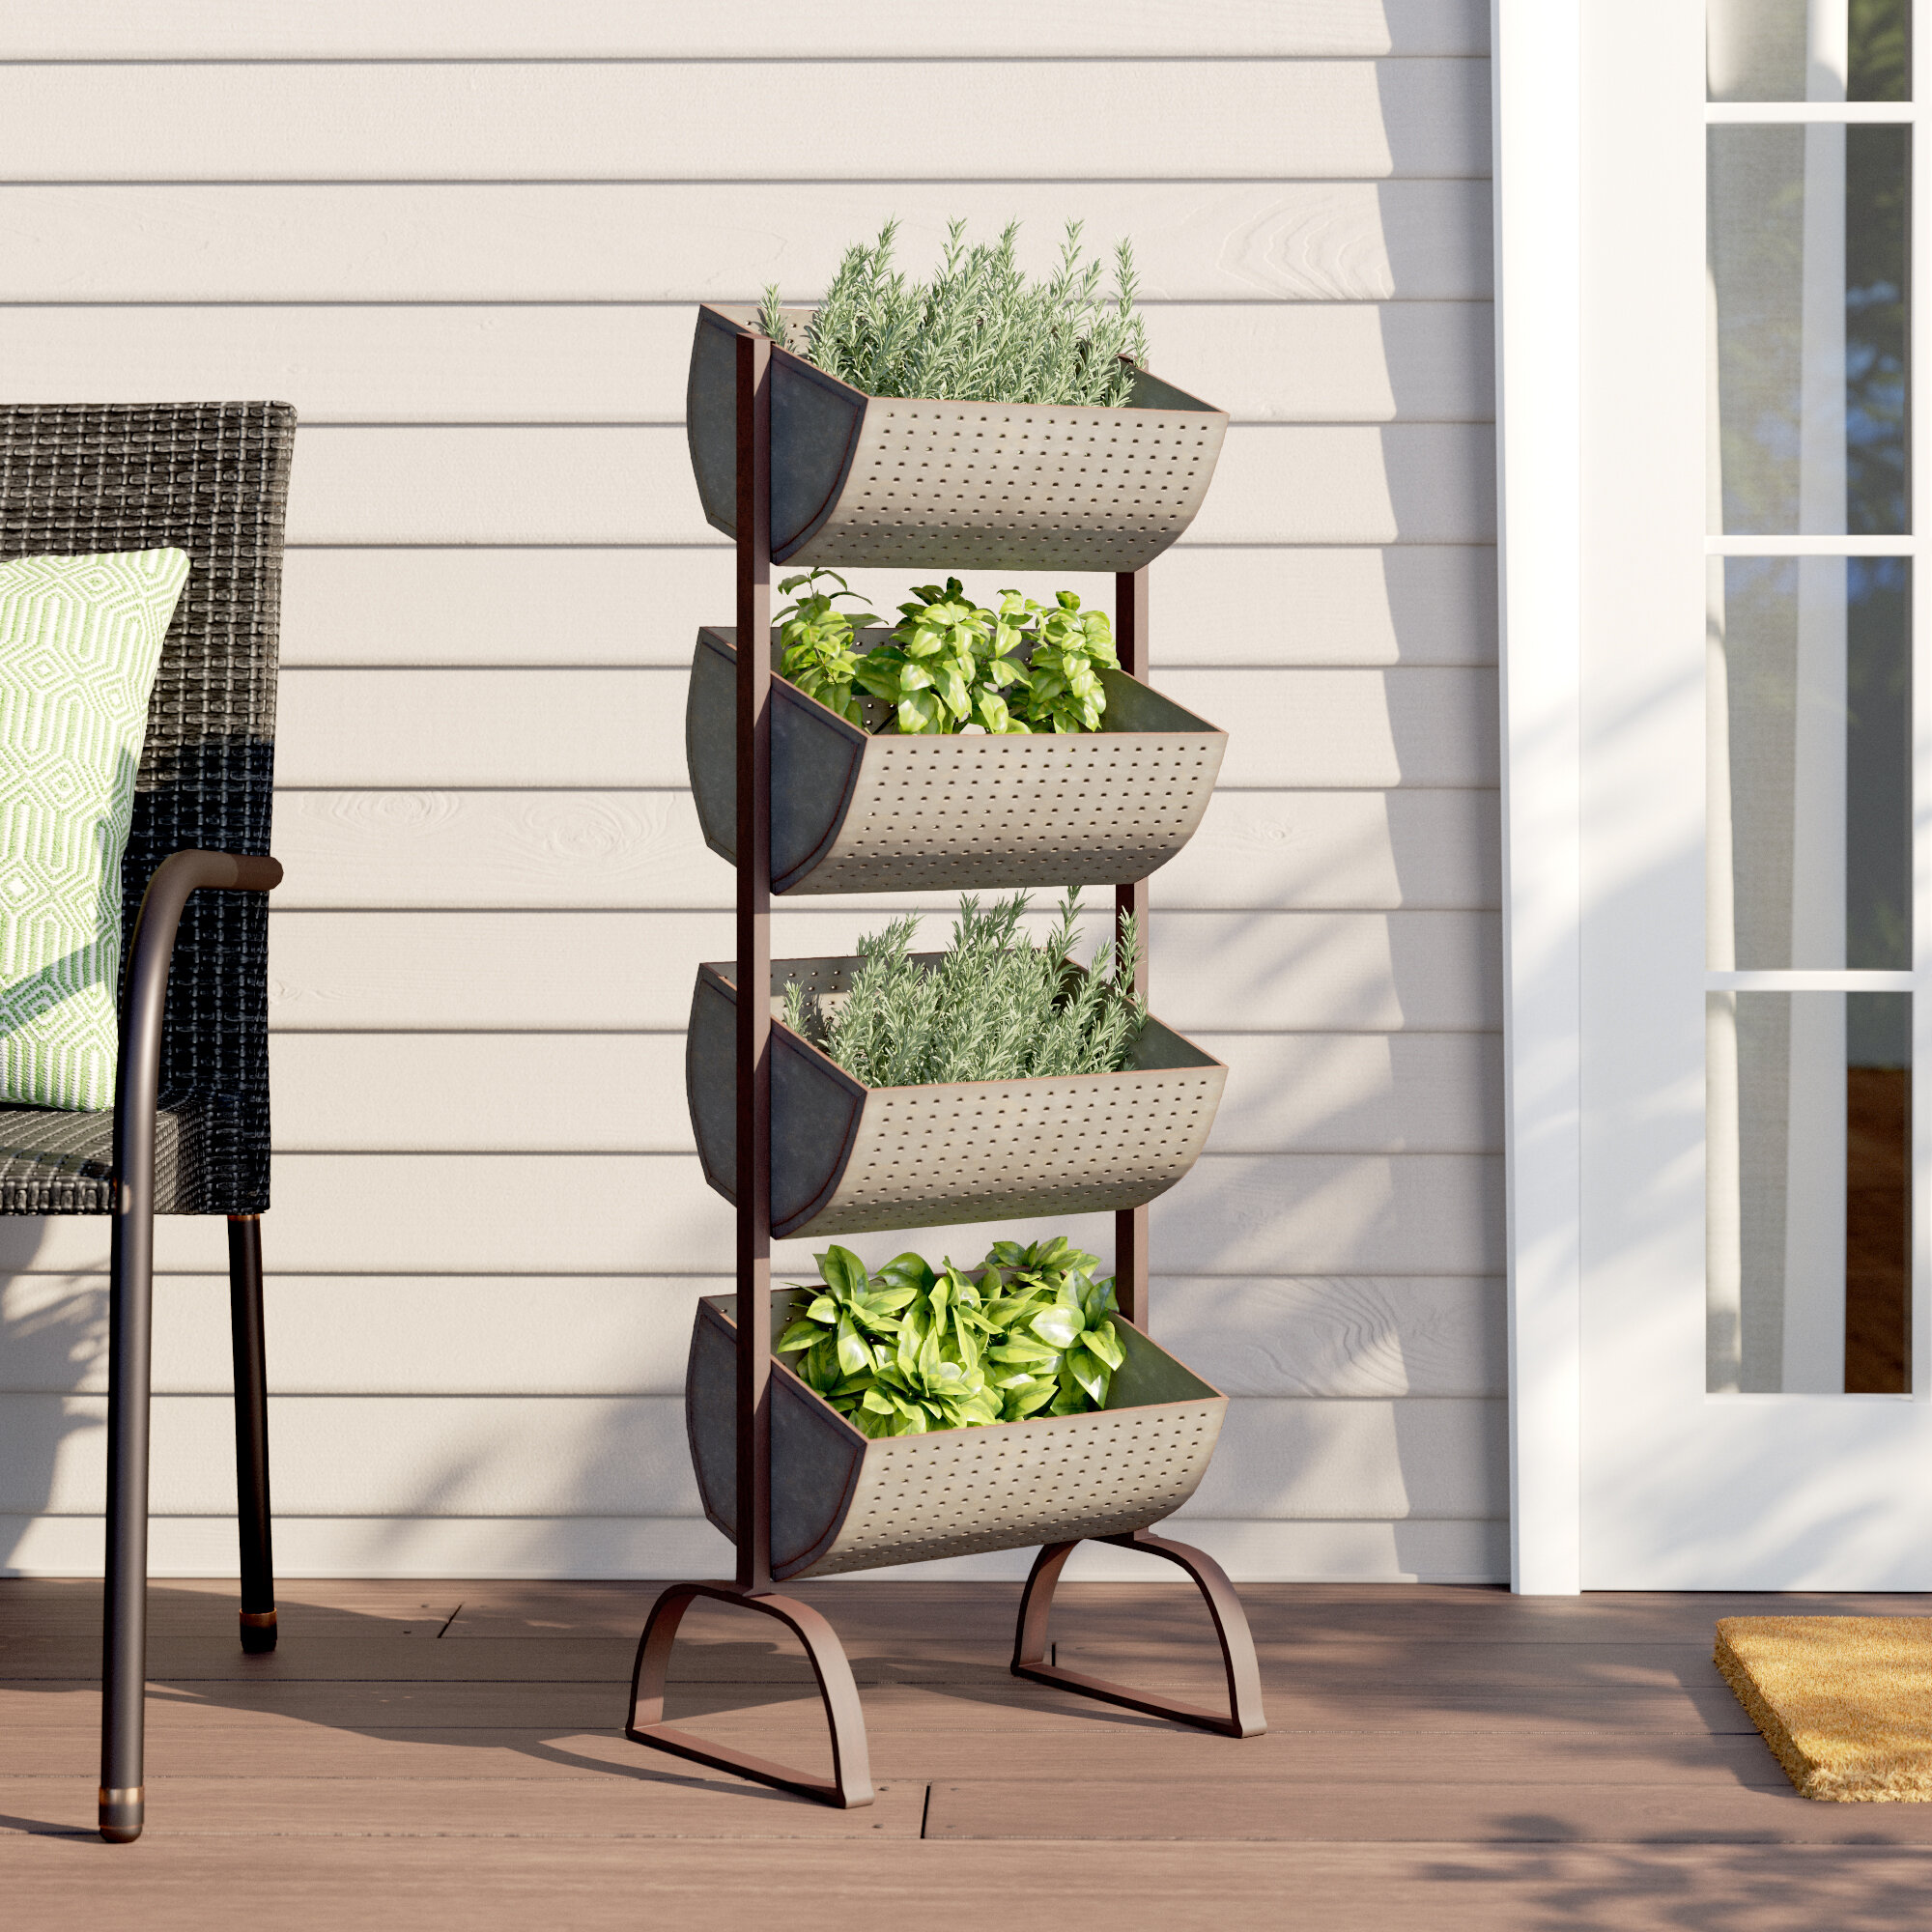 Elevated Tiered Gracie Oaks Planters You Ll Love In 2021 Wayfair